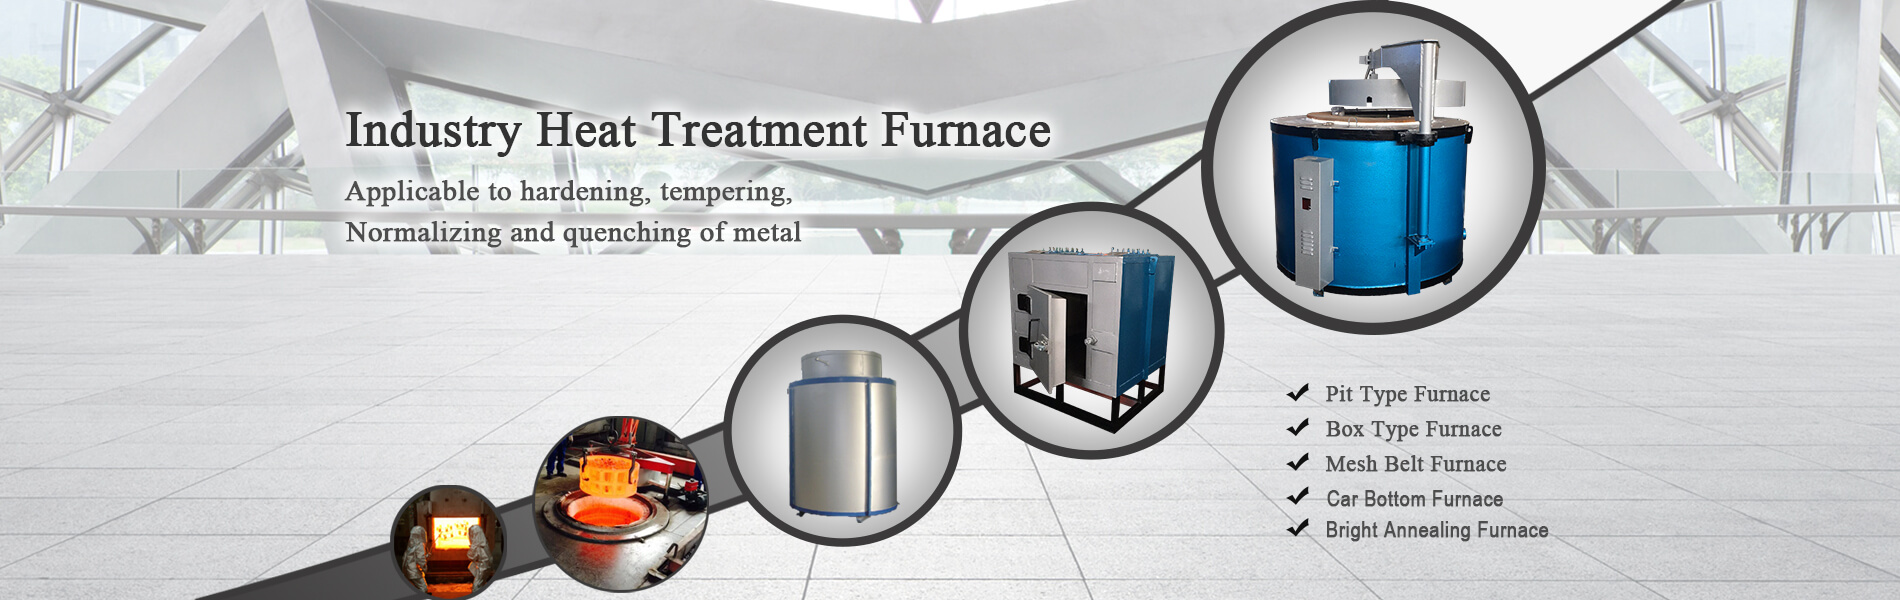 industry treatment furnace